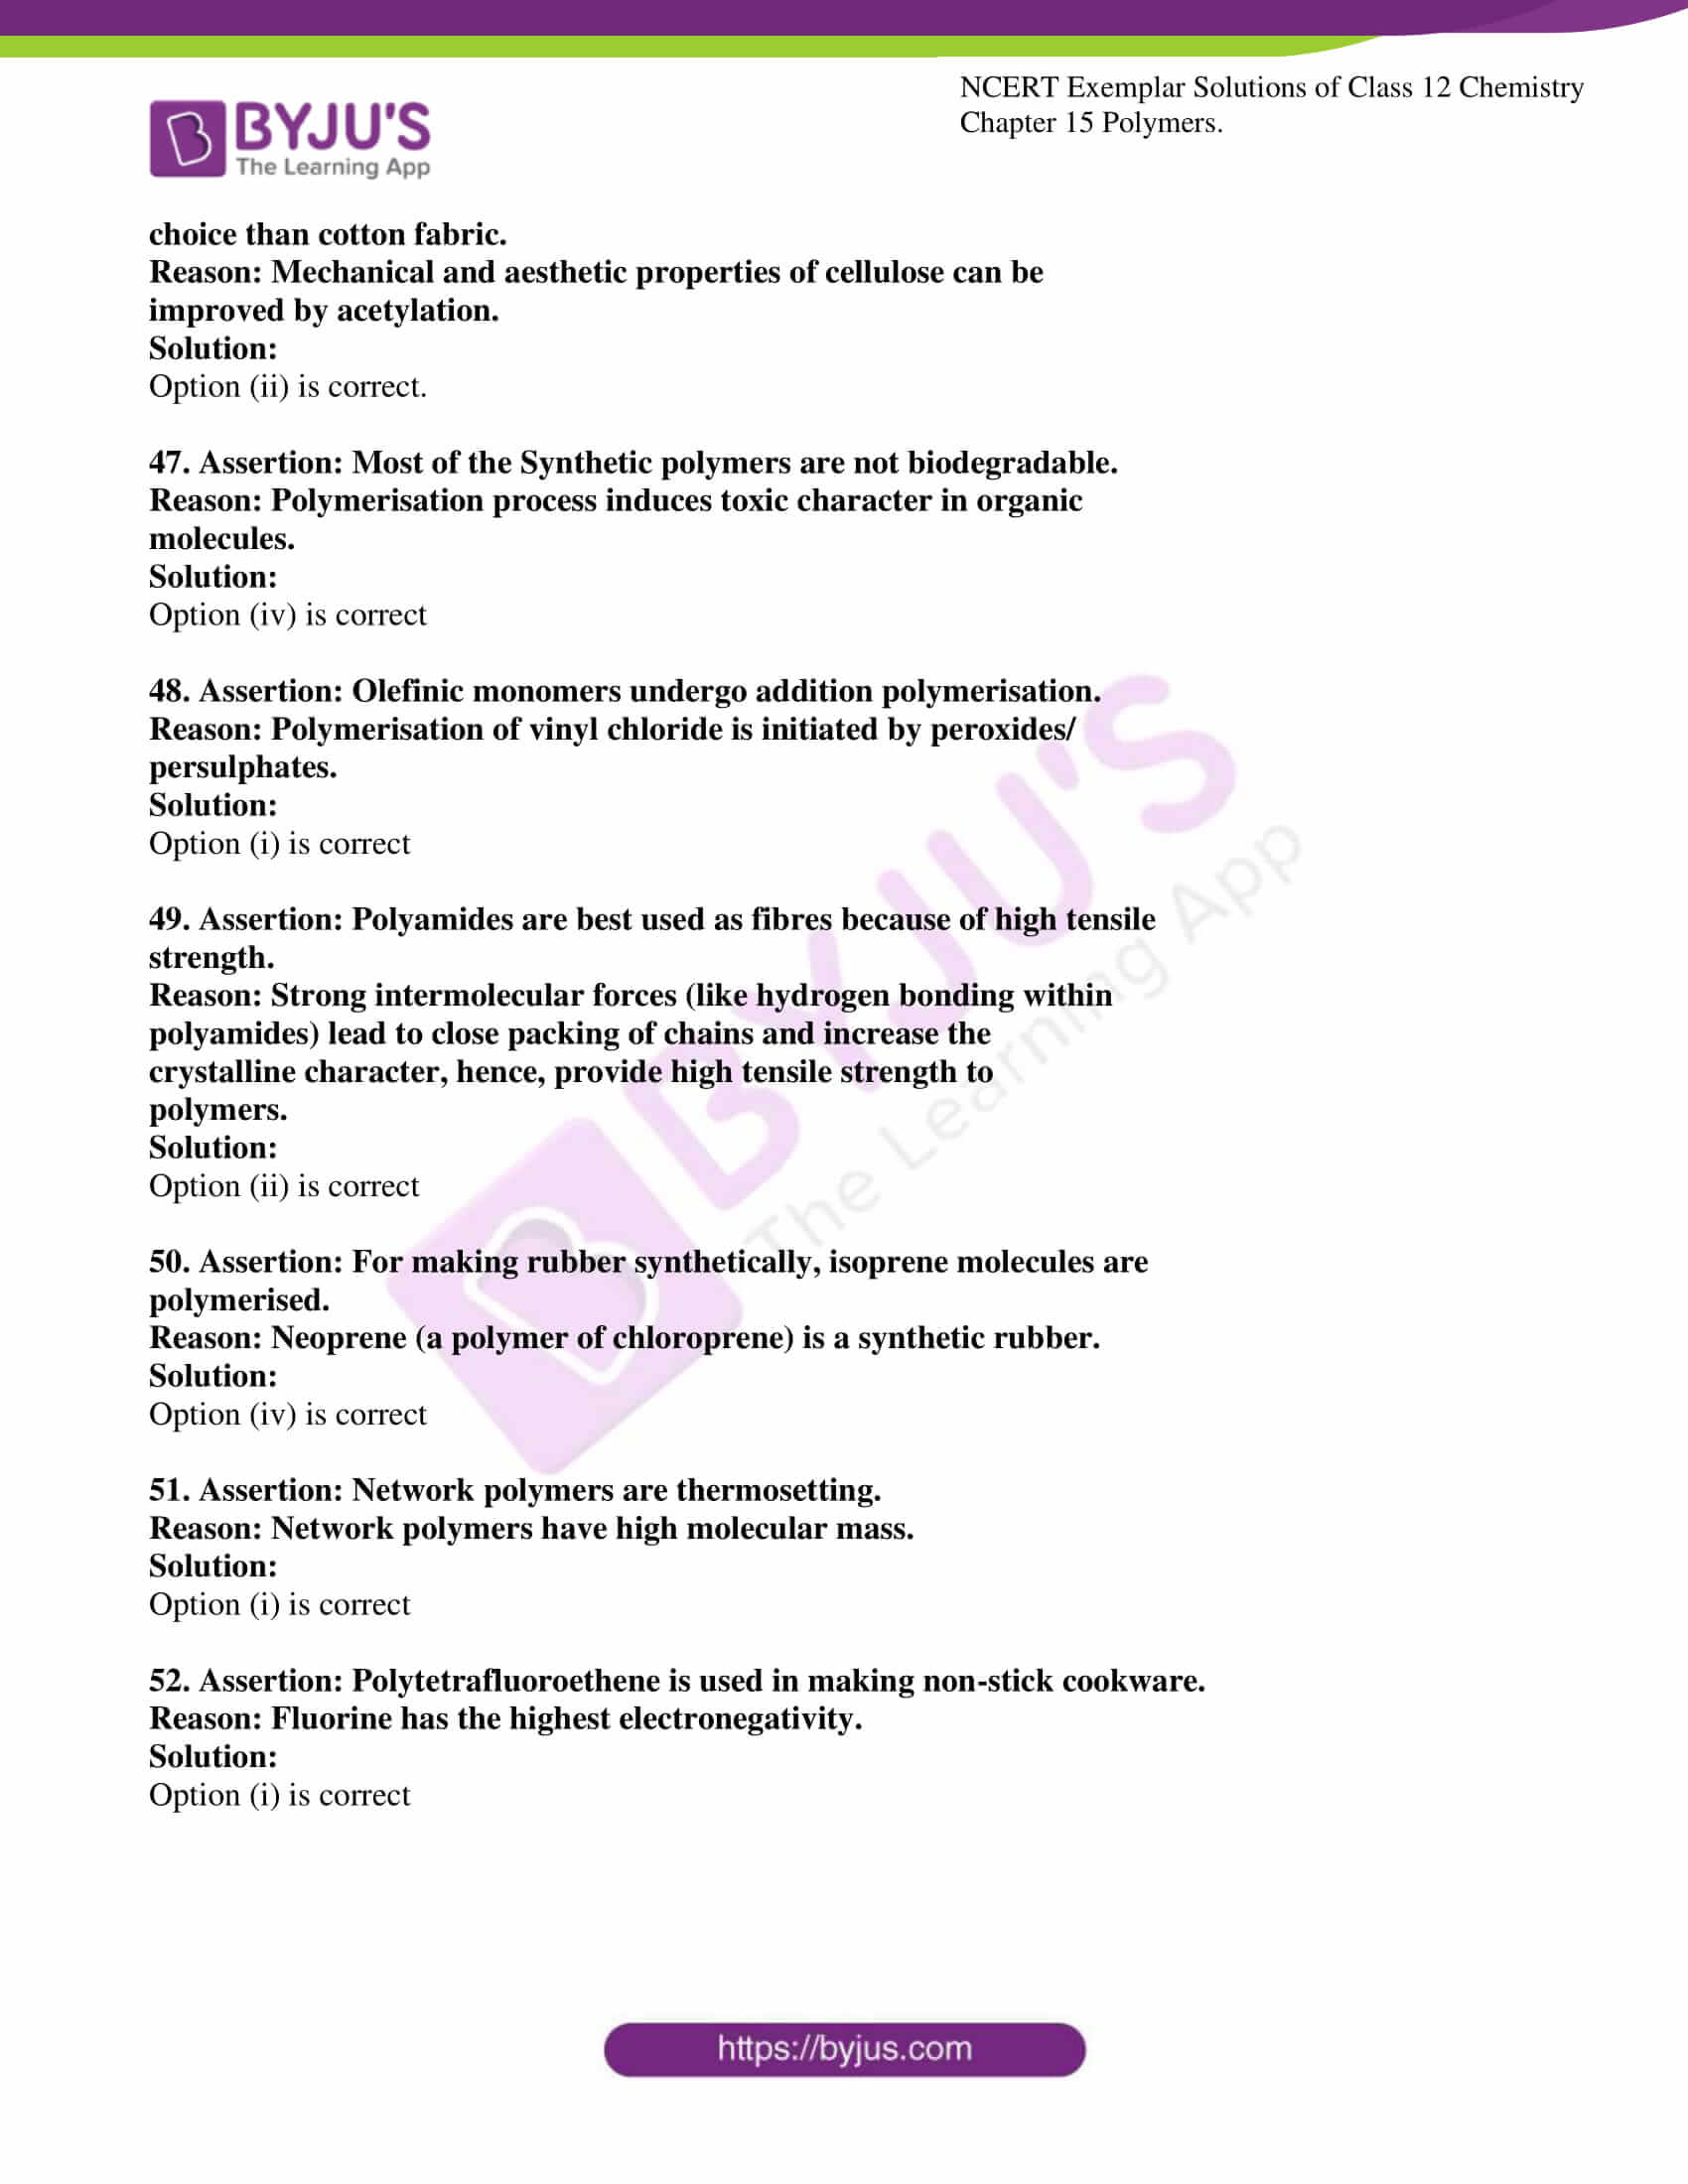 ncert exemplar solutions for class 12 chemistry chapter 15 polymers 13